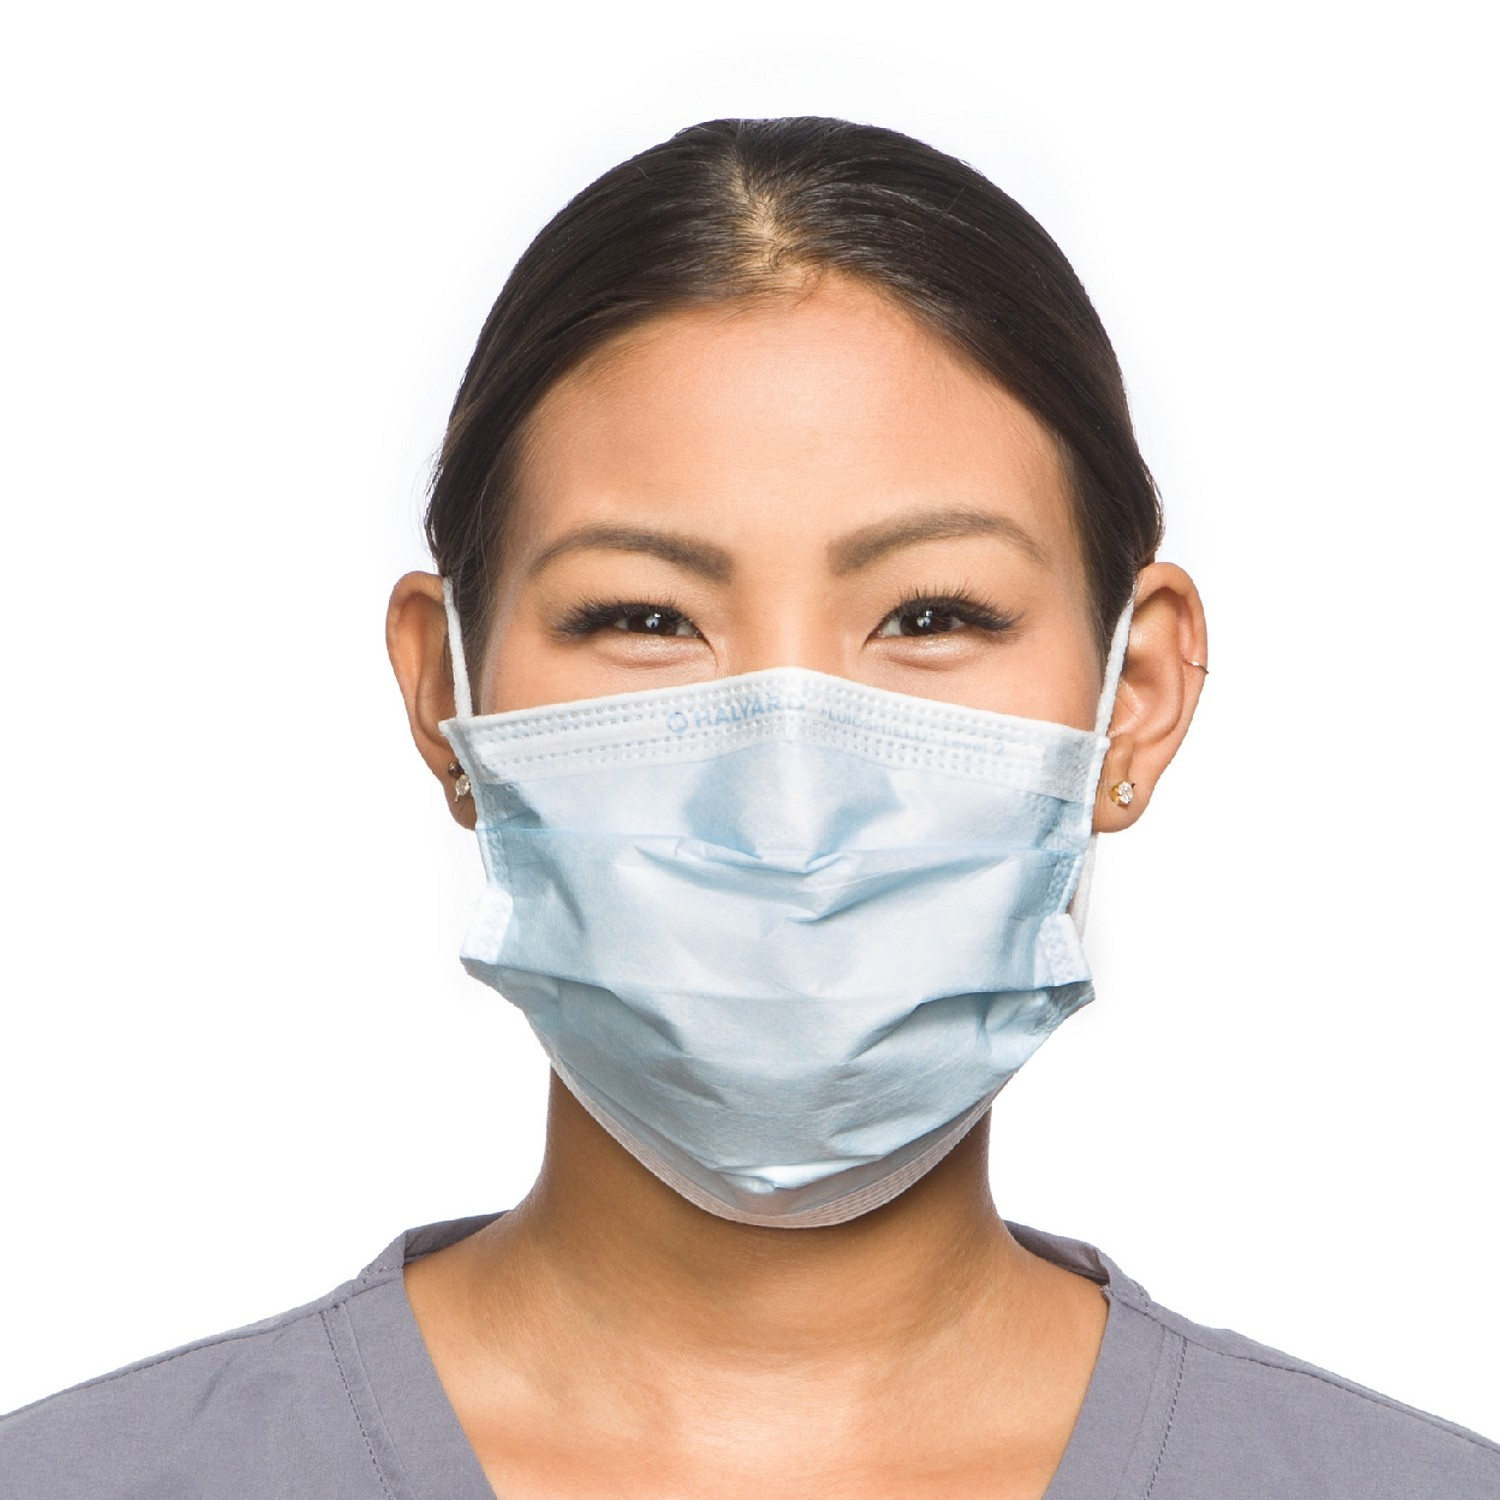 【Exclusive】ZAFUL: Masks, KN95, Disposable Masks 18% OFF!